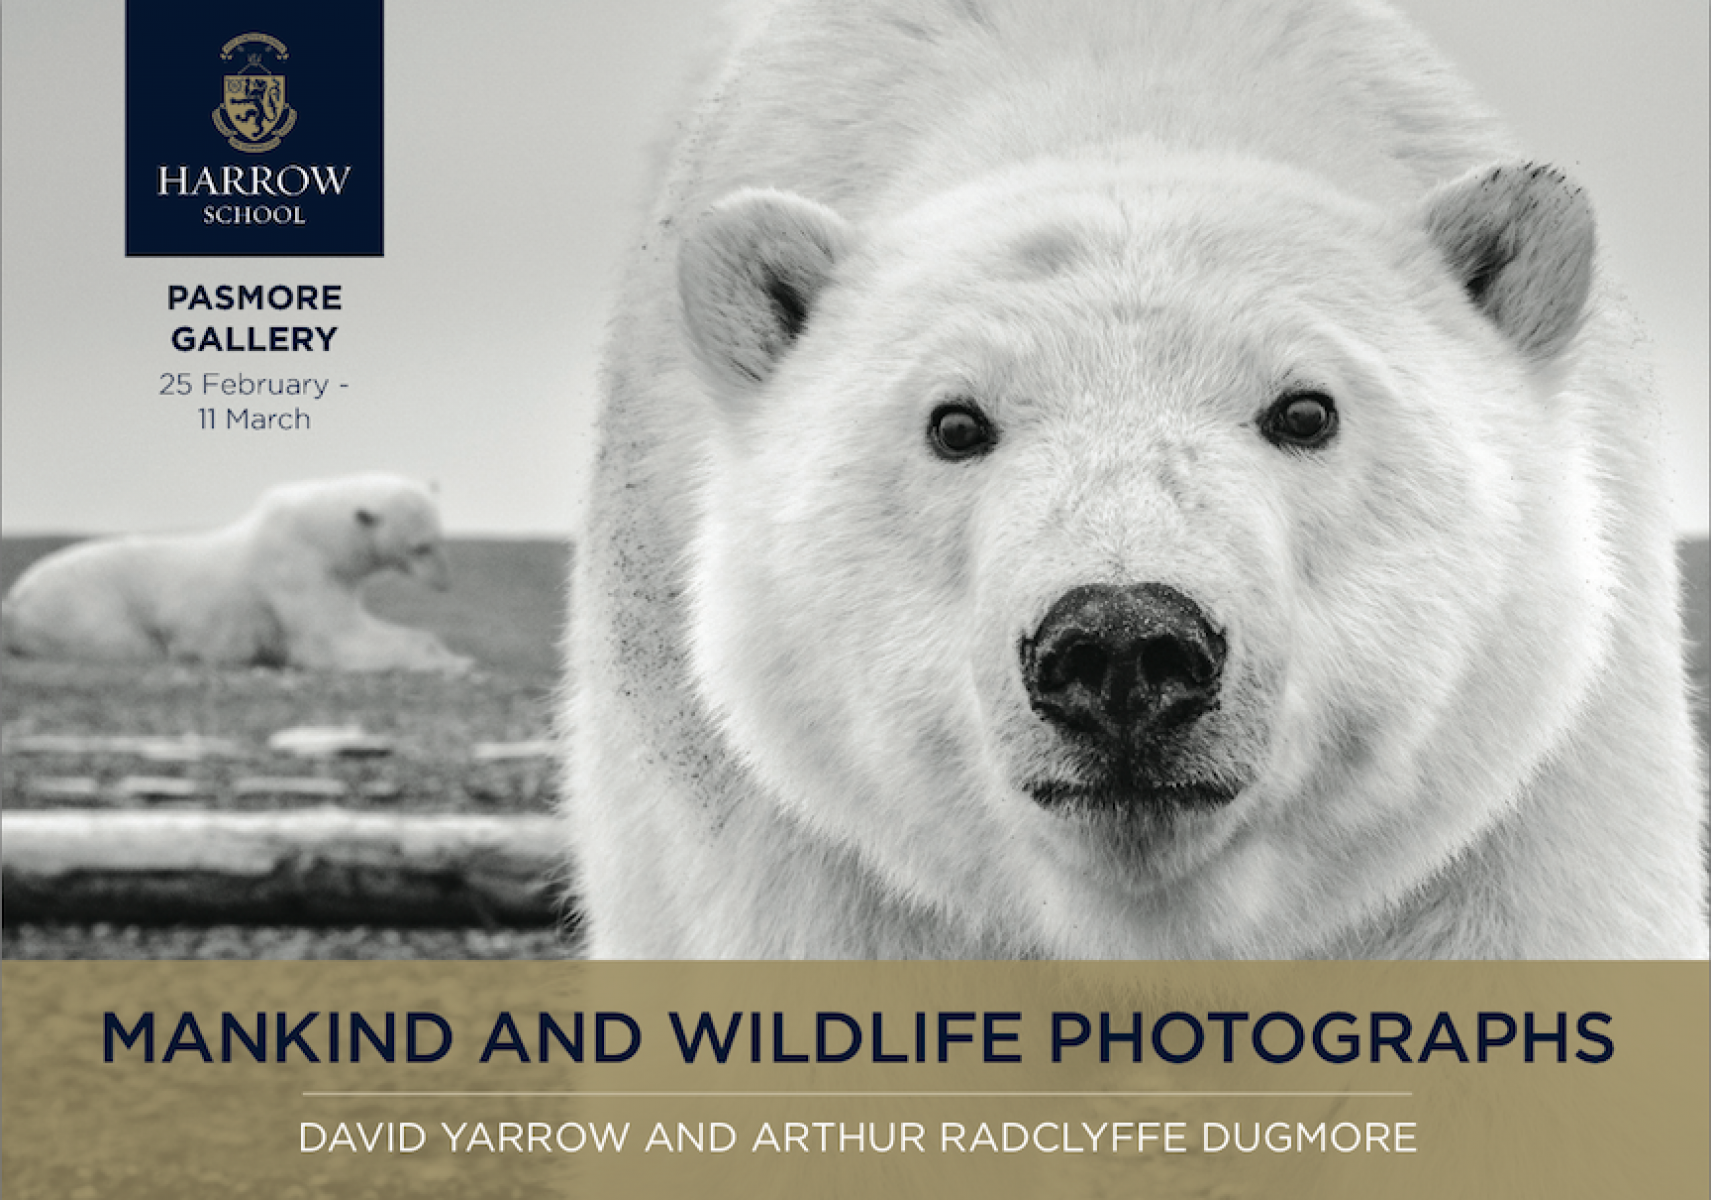 David Yarrow Exhibition At Harrow School